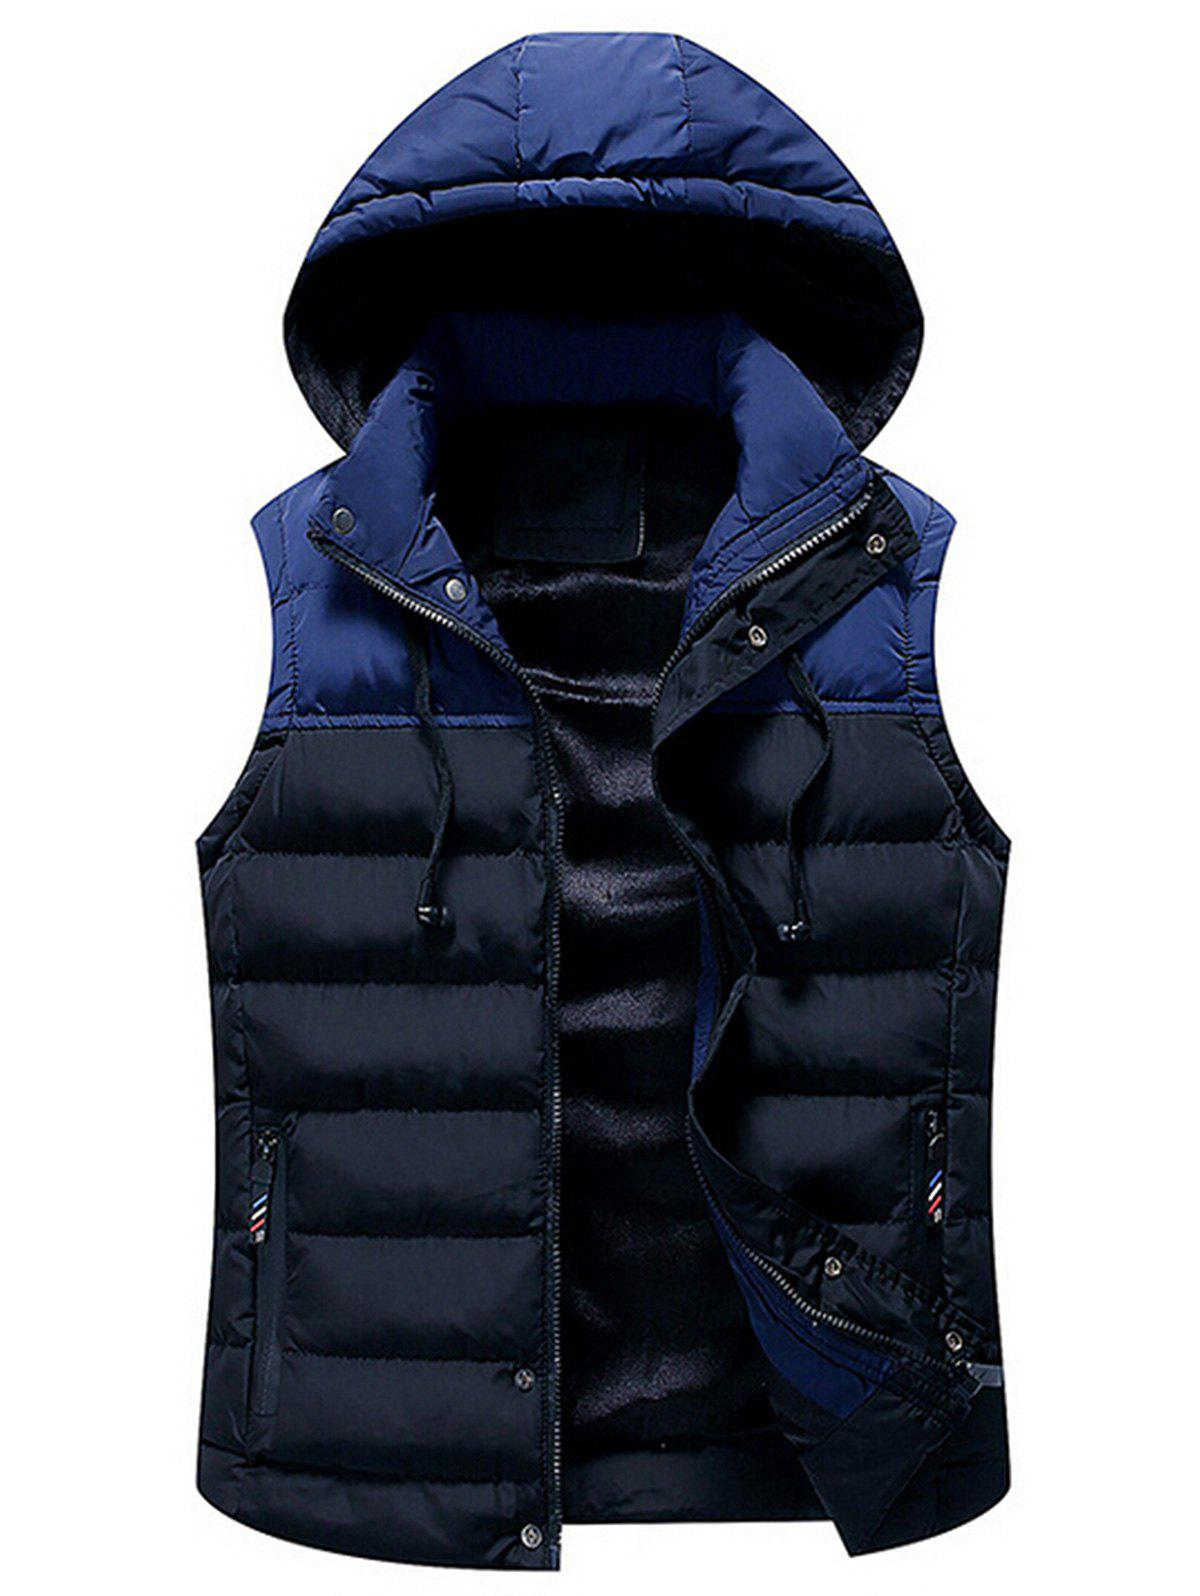 Zip Up Color Block Hooded Padded Vest - CADETBLUE XL